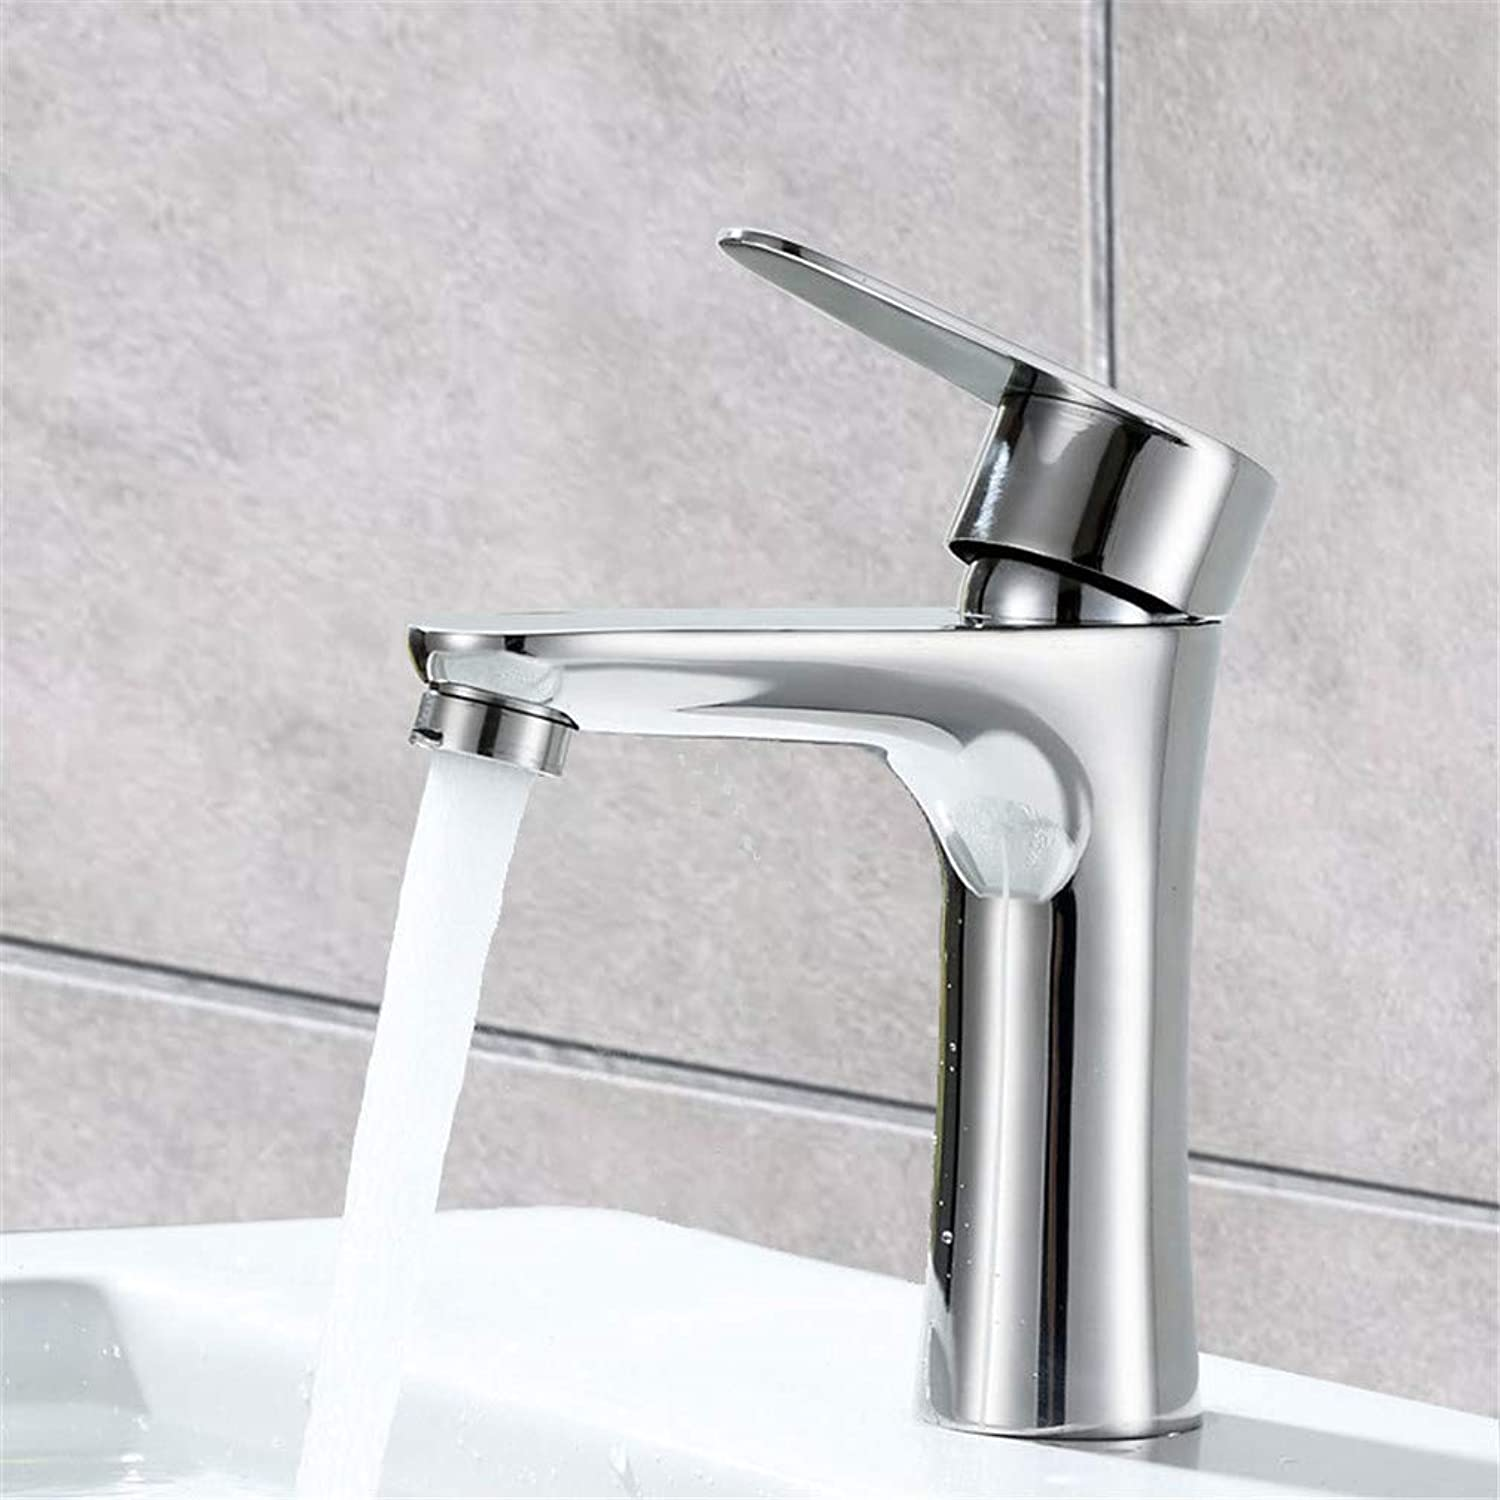 LHY BATHLEADER Sink Mixer Tap, 304 Stainless Steel Chrome Hot and Cold Bathroom Wash Basin Sink Faucet with Ceramic Filter and Honeycomb Bubbler